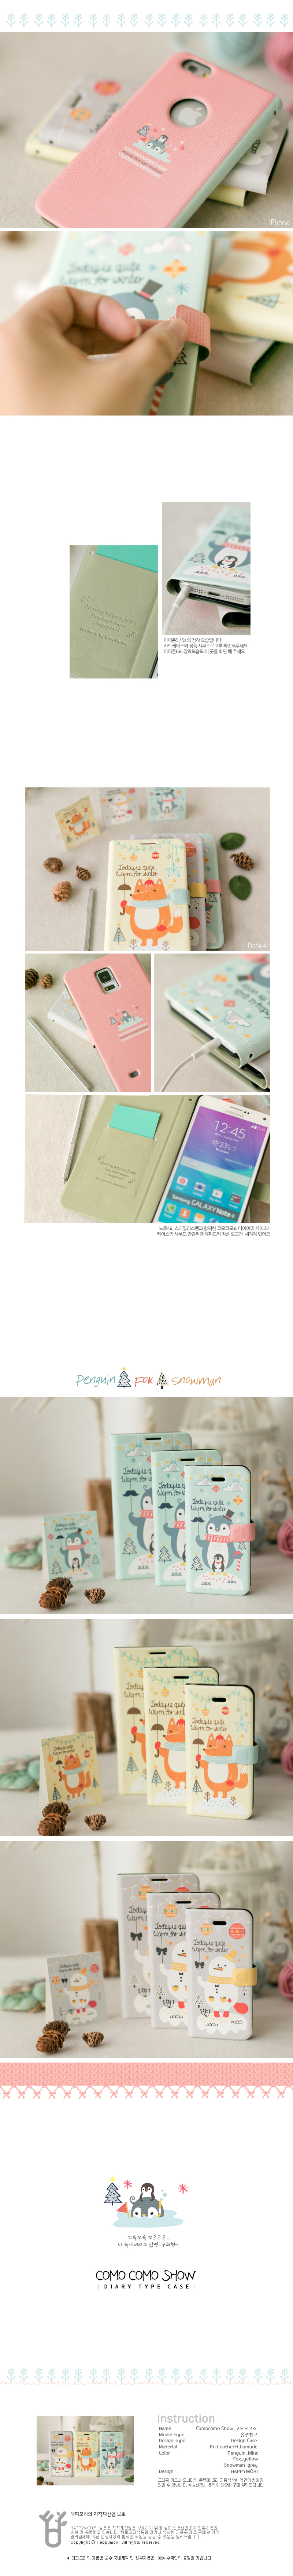 [HAPPYMORI] Flip Cover Case _ Comocomoshow (iPhone4_4s,iPhone5_5s,iPhone6_6s)